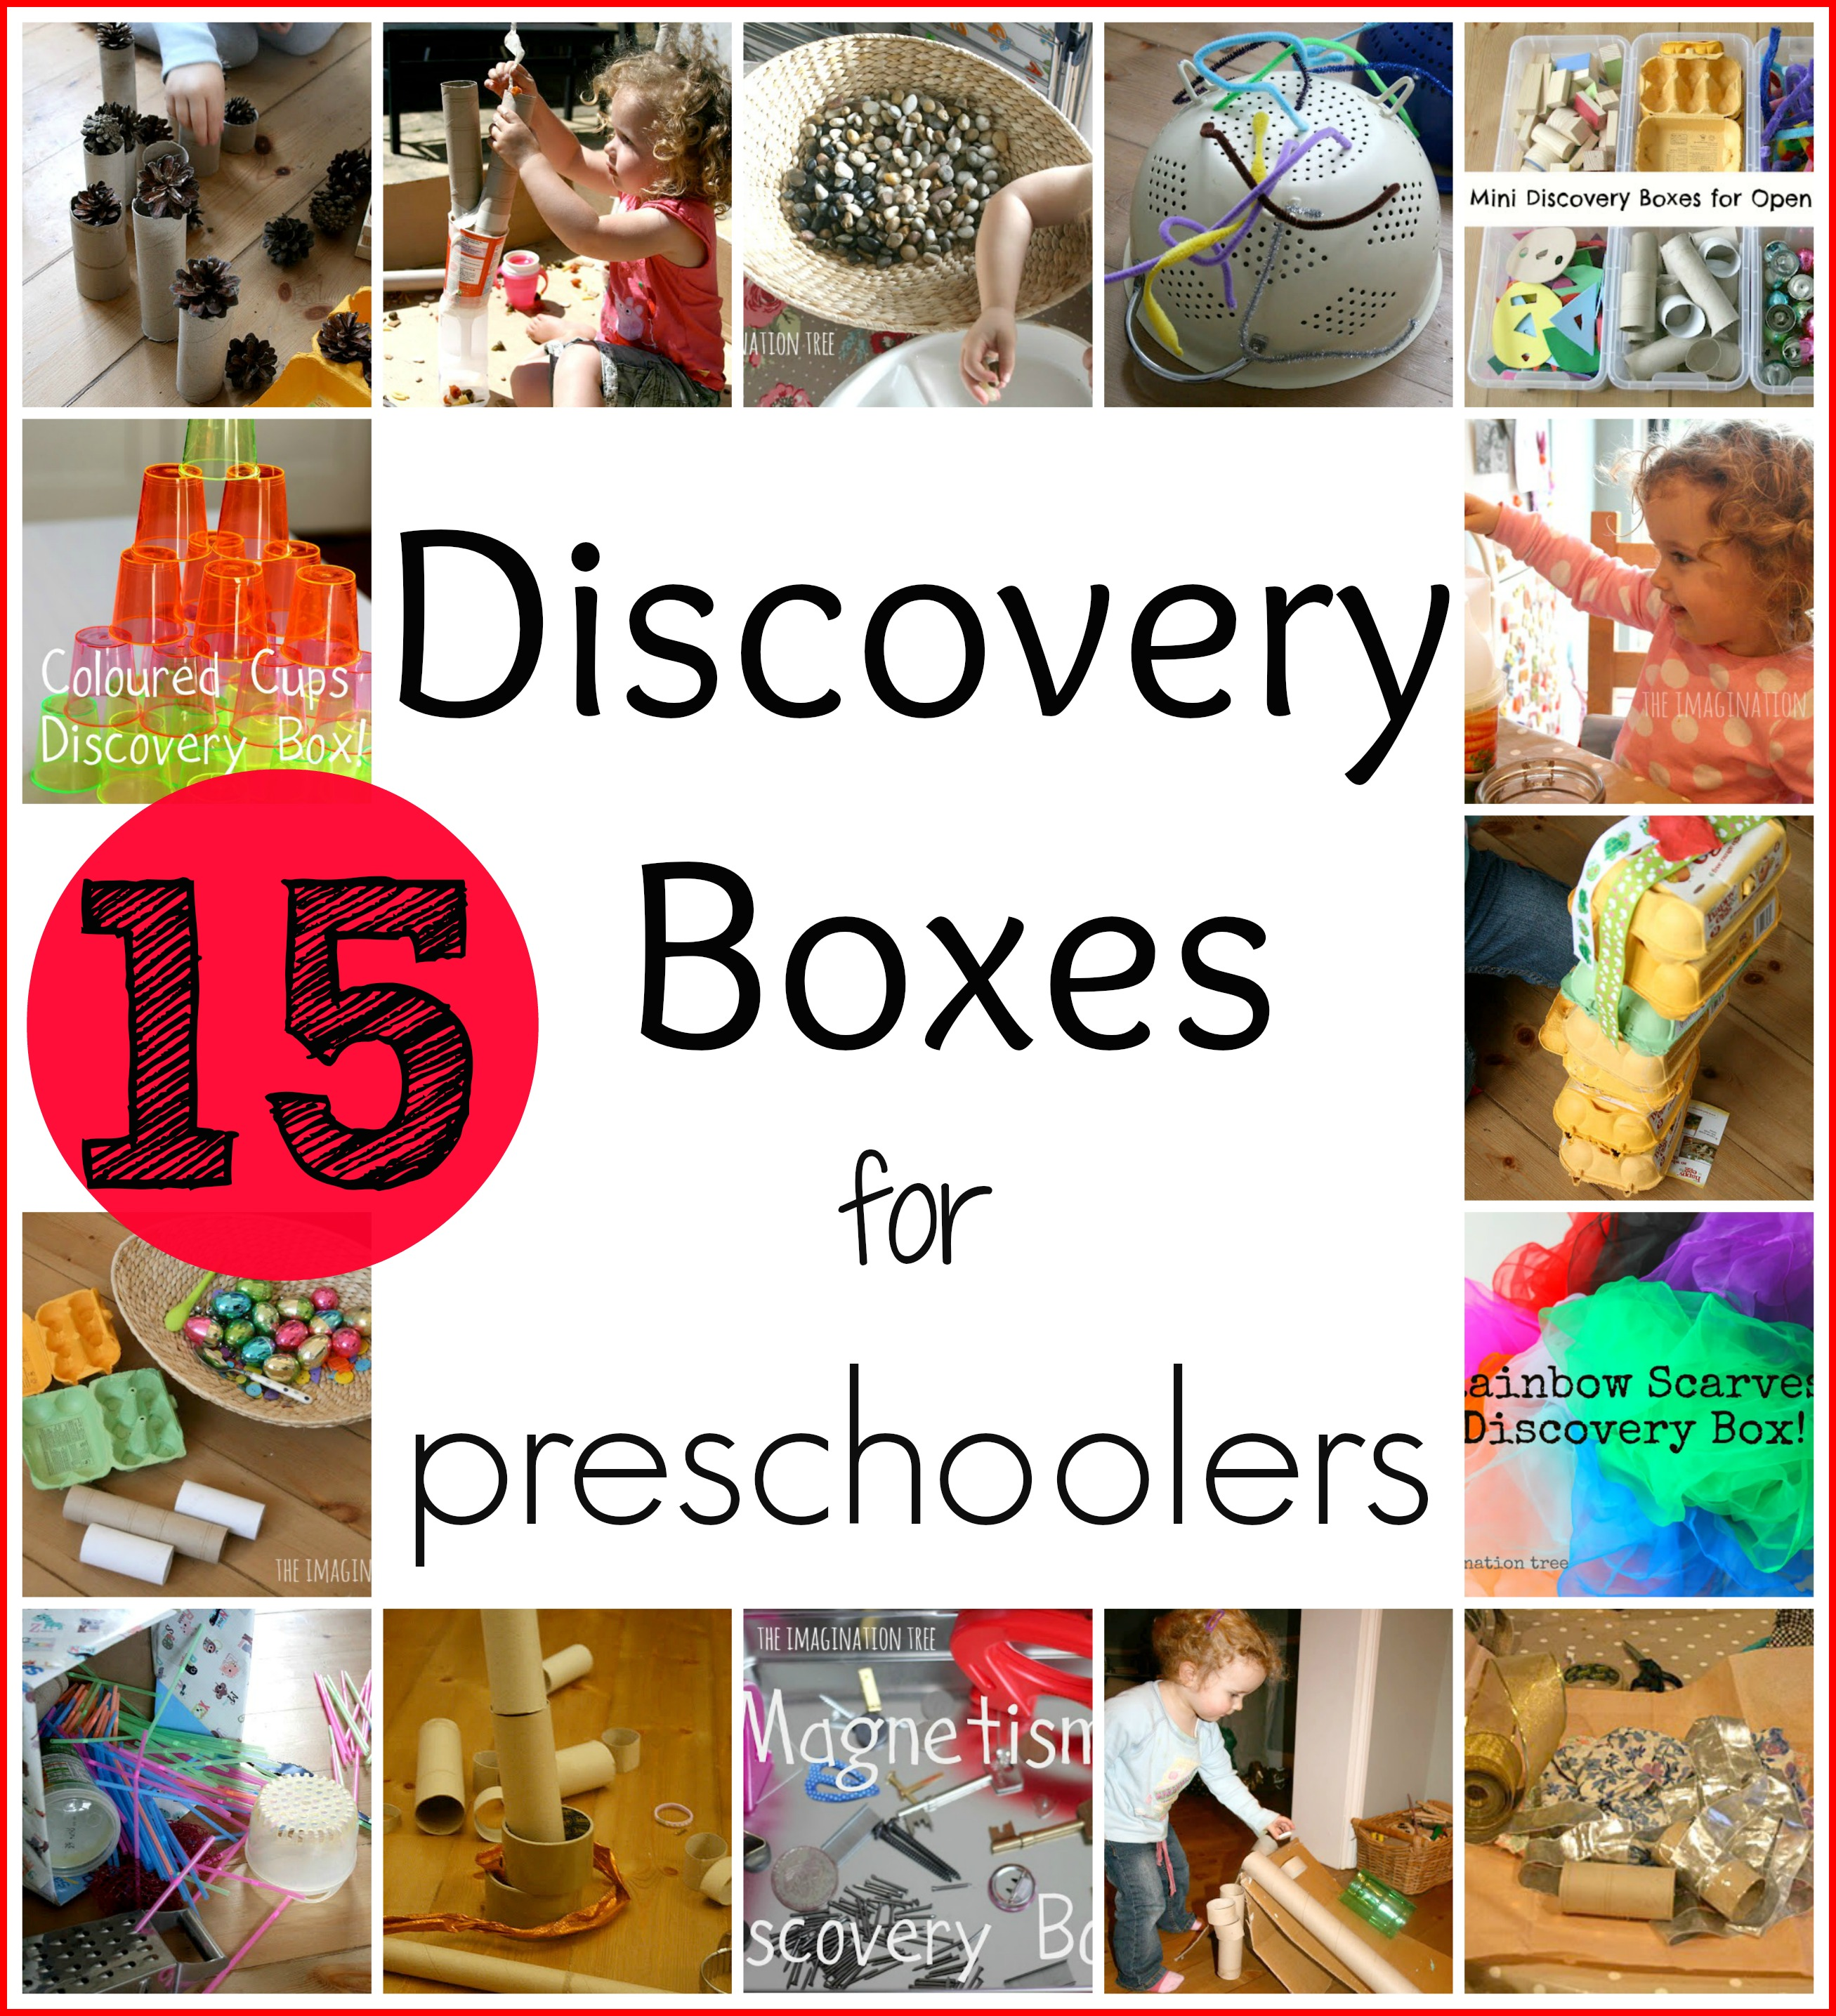 15 Discovery Boxes For Preschoolers The Imagination Tree